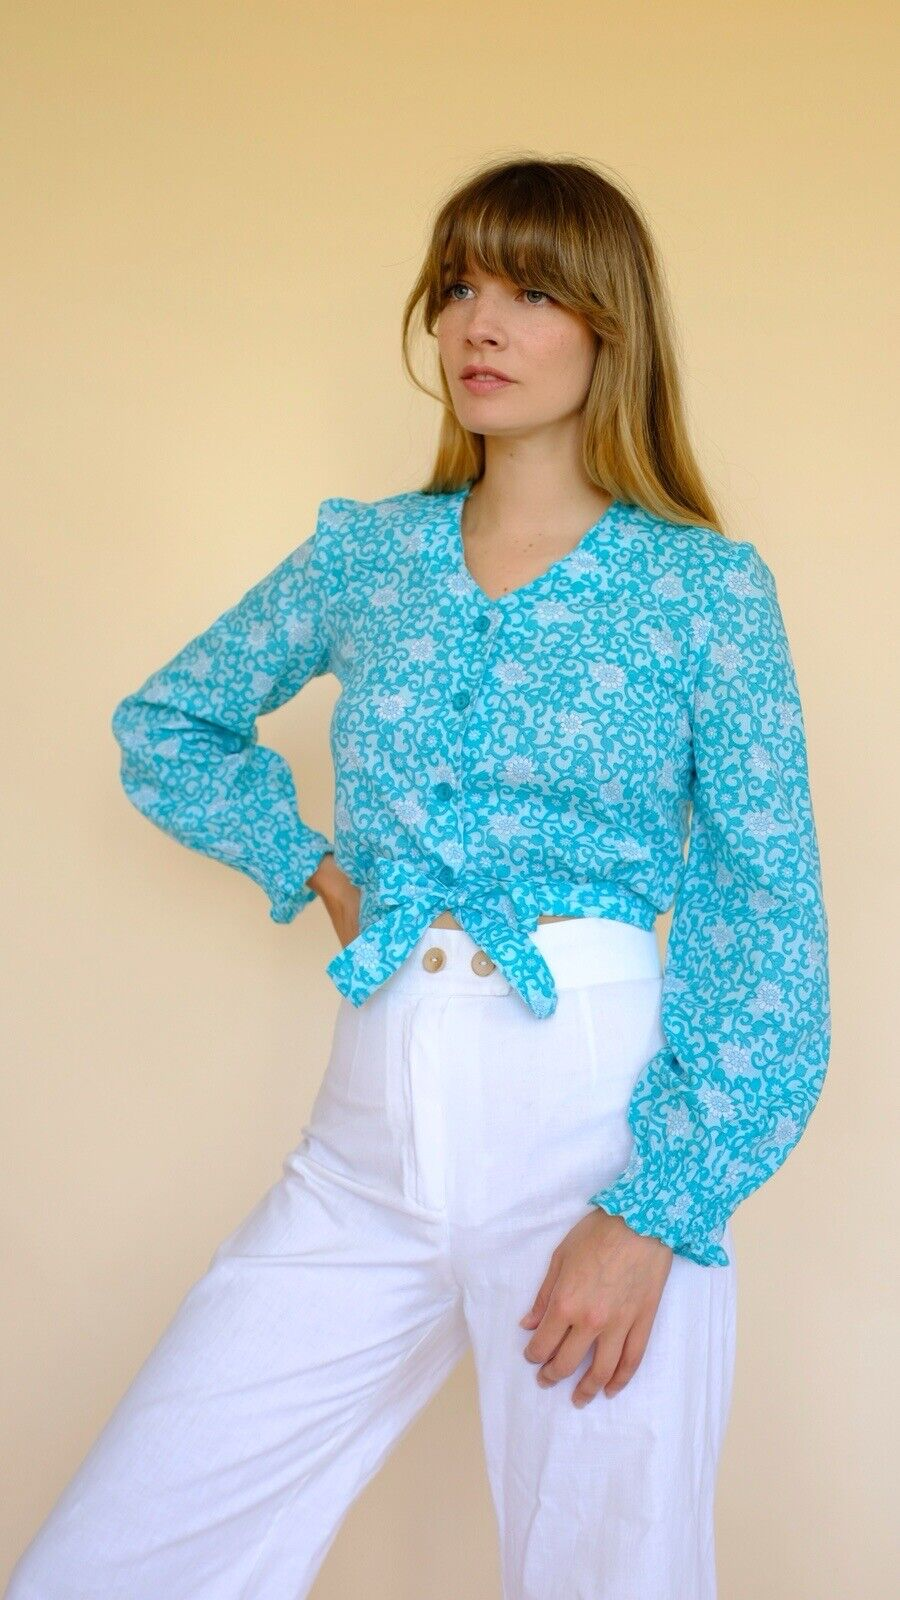 Vintage 60s/70s Blue Floral Print Blouse Top Shirt Bell Sleeve Liberty 6 8